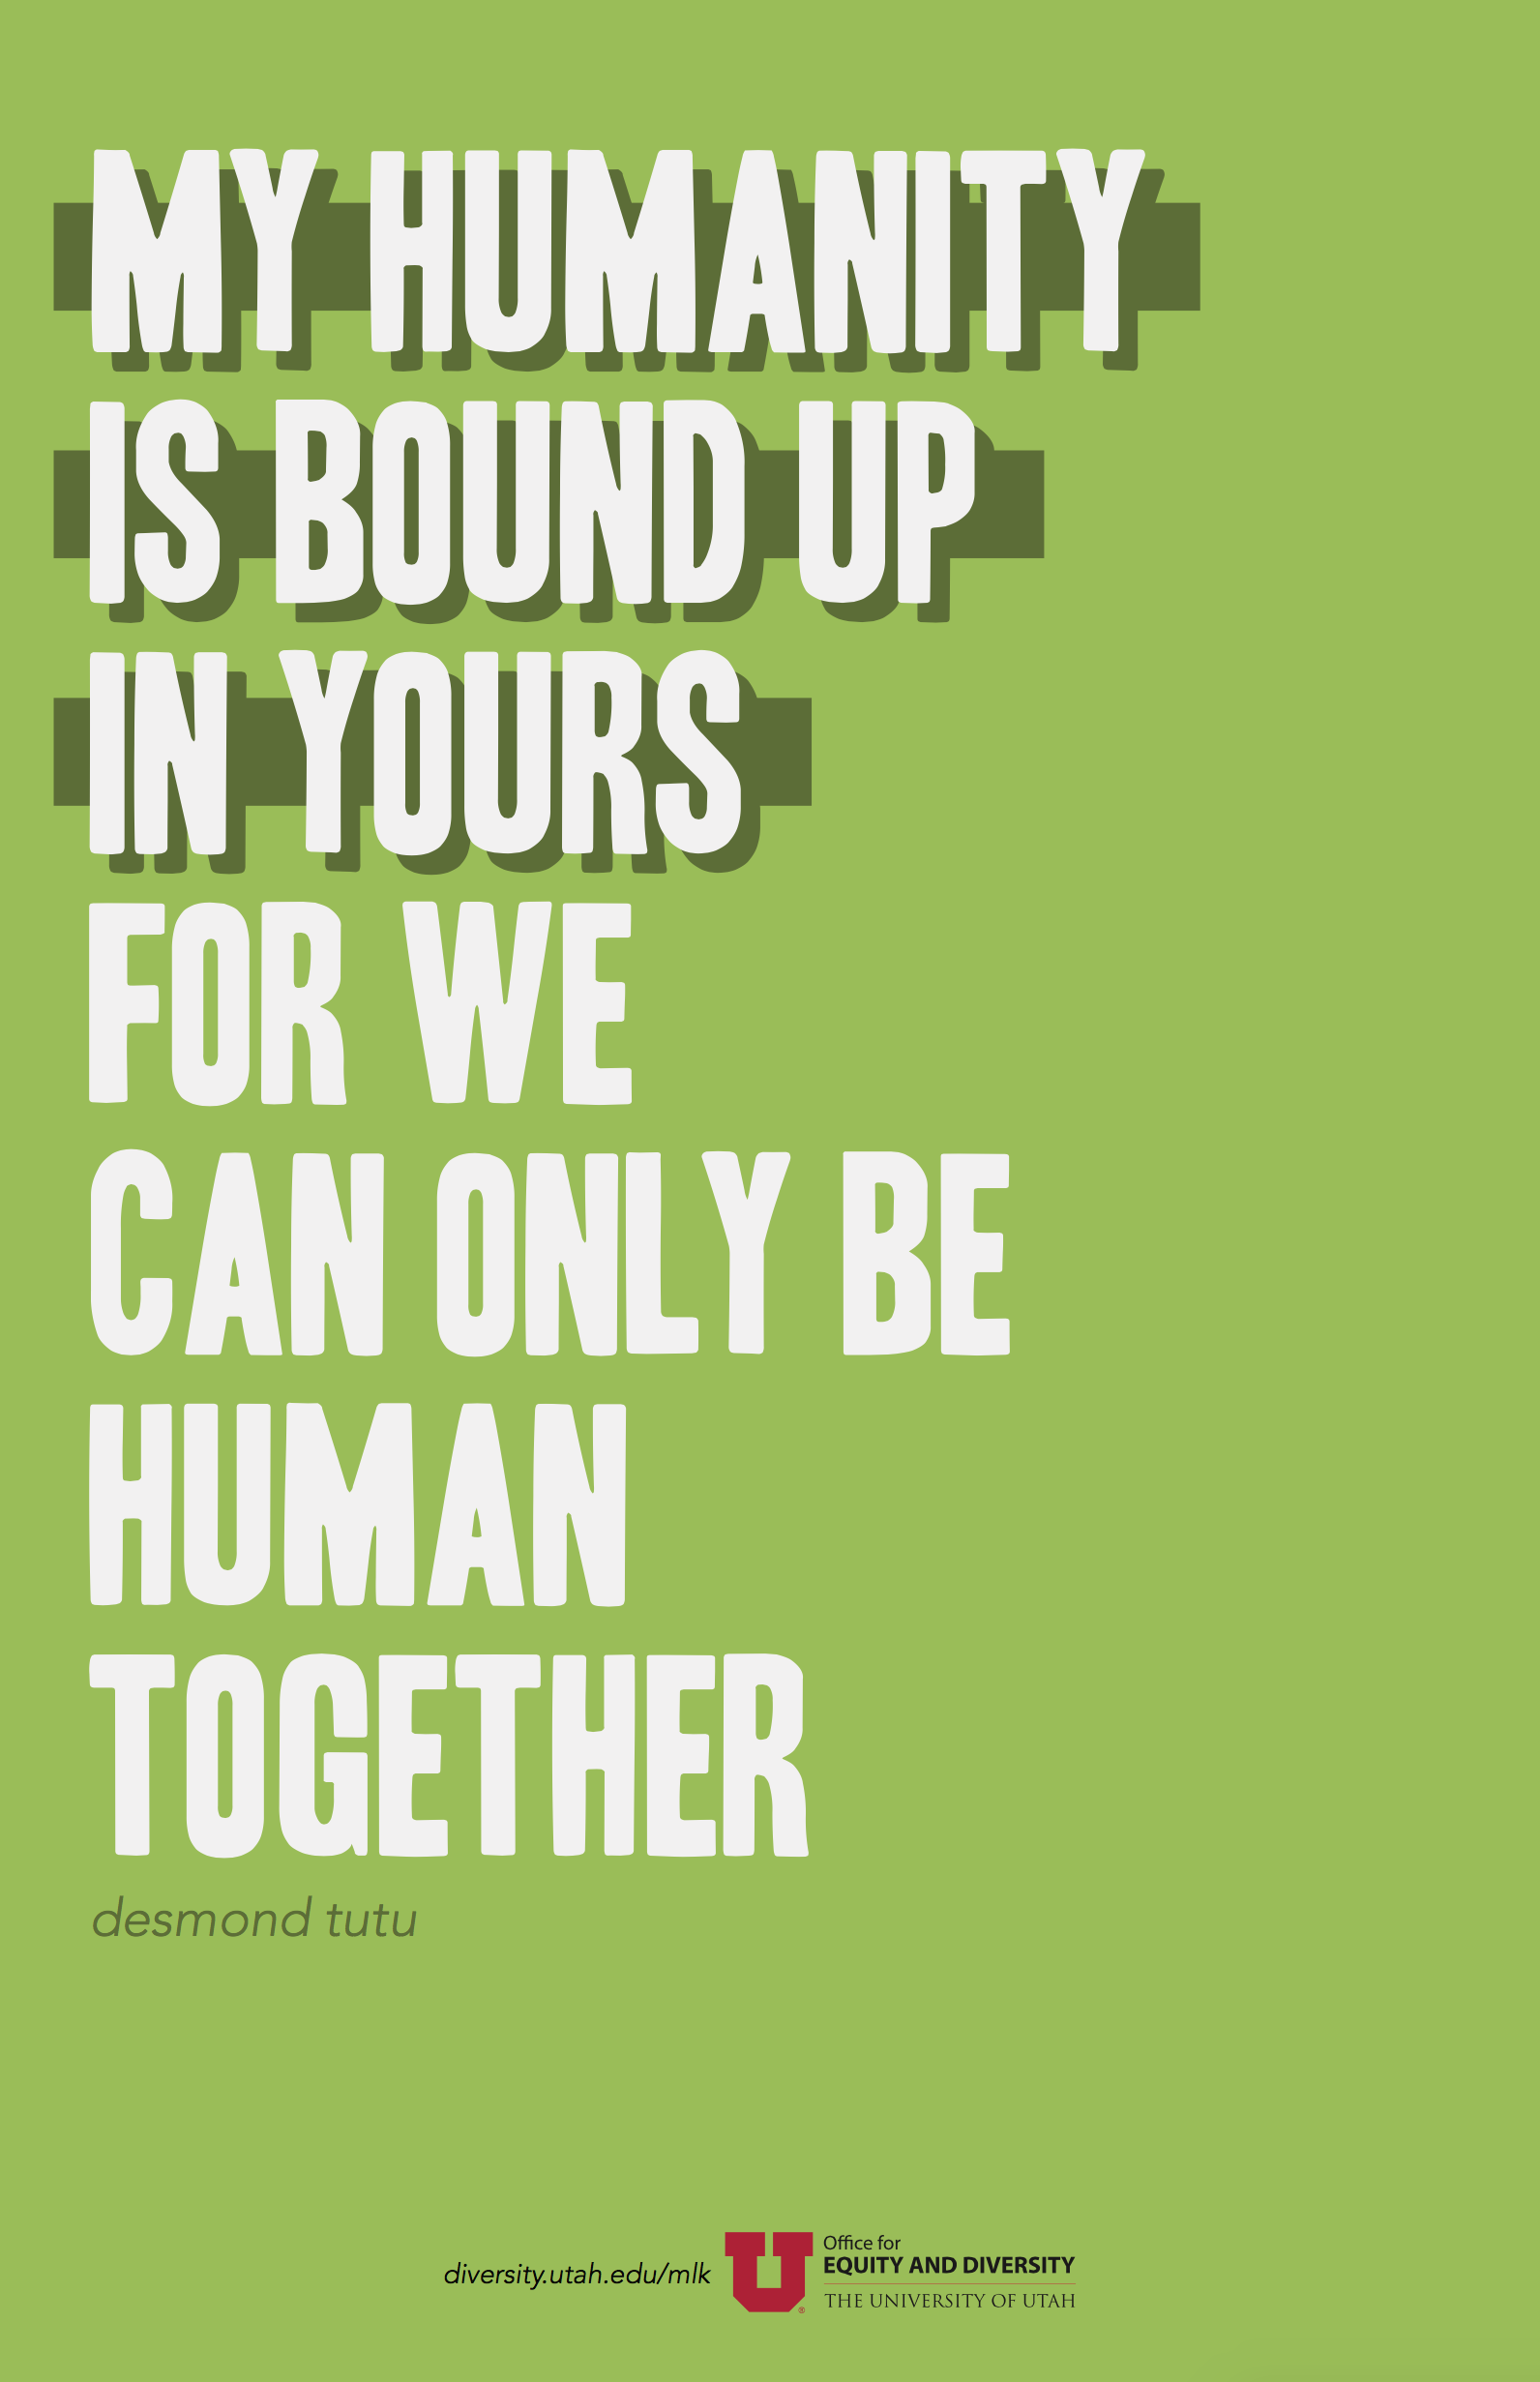 "A yellow-green poster with a quote in uppercase light grey text. The quote by Desmond Tutu reads: ""My humanity is bound up in yours, for we can only be human together."" The words ""my humanity is bound up in yours"" is emphasized in a dark green shadow and rectangular bar behind the text."